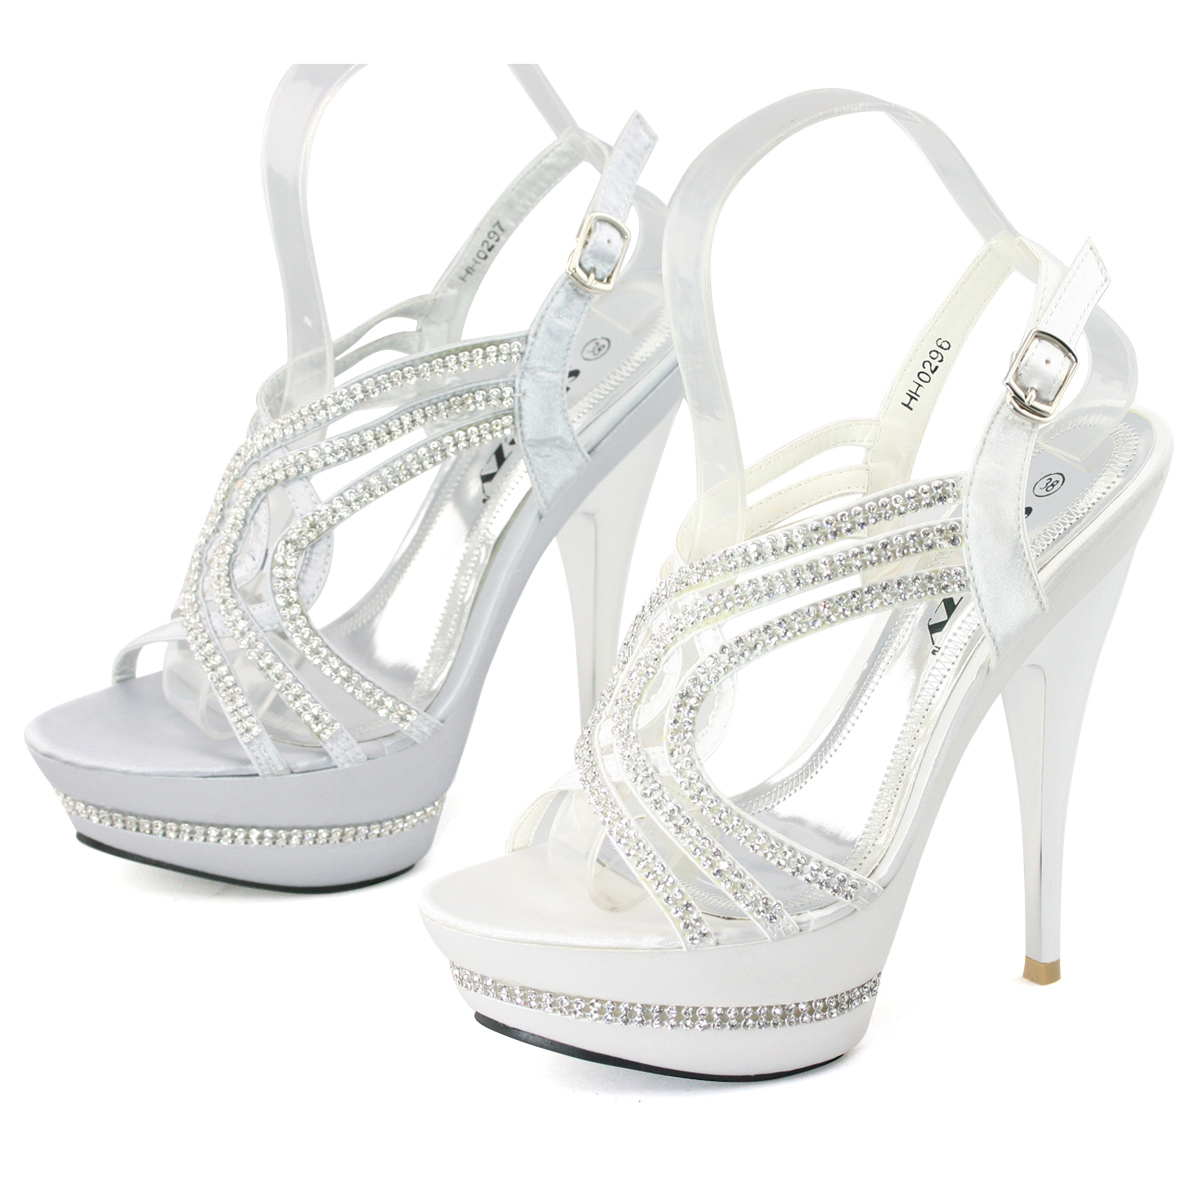 New-ladies-white-silver-satin-strappy-high-platform-diamond-sandal